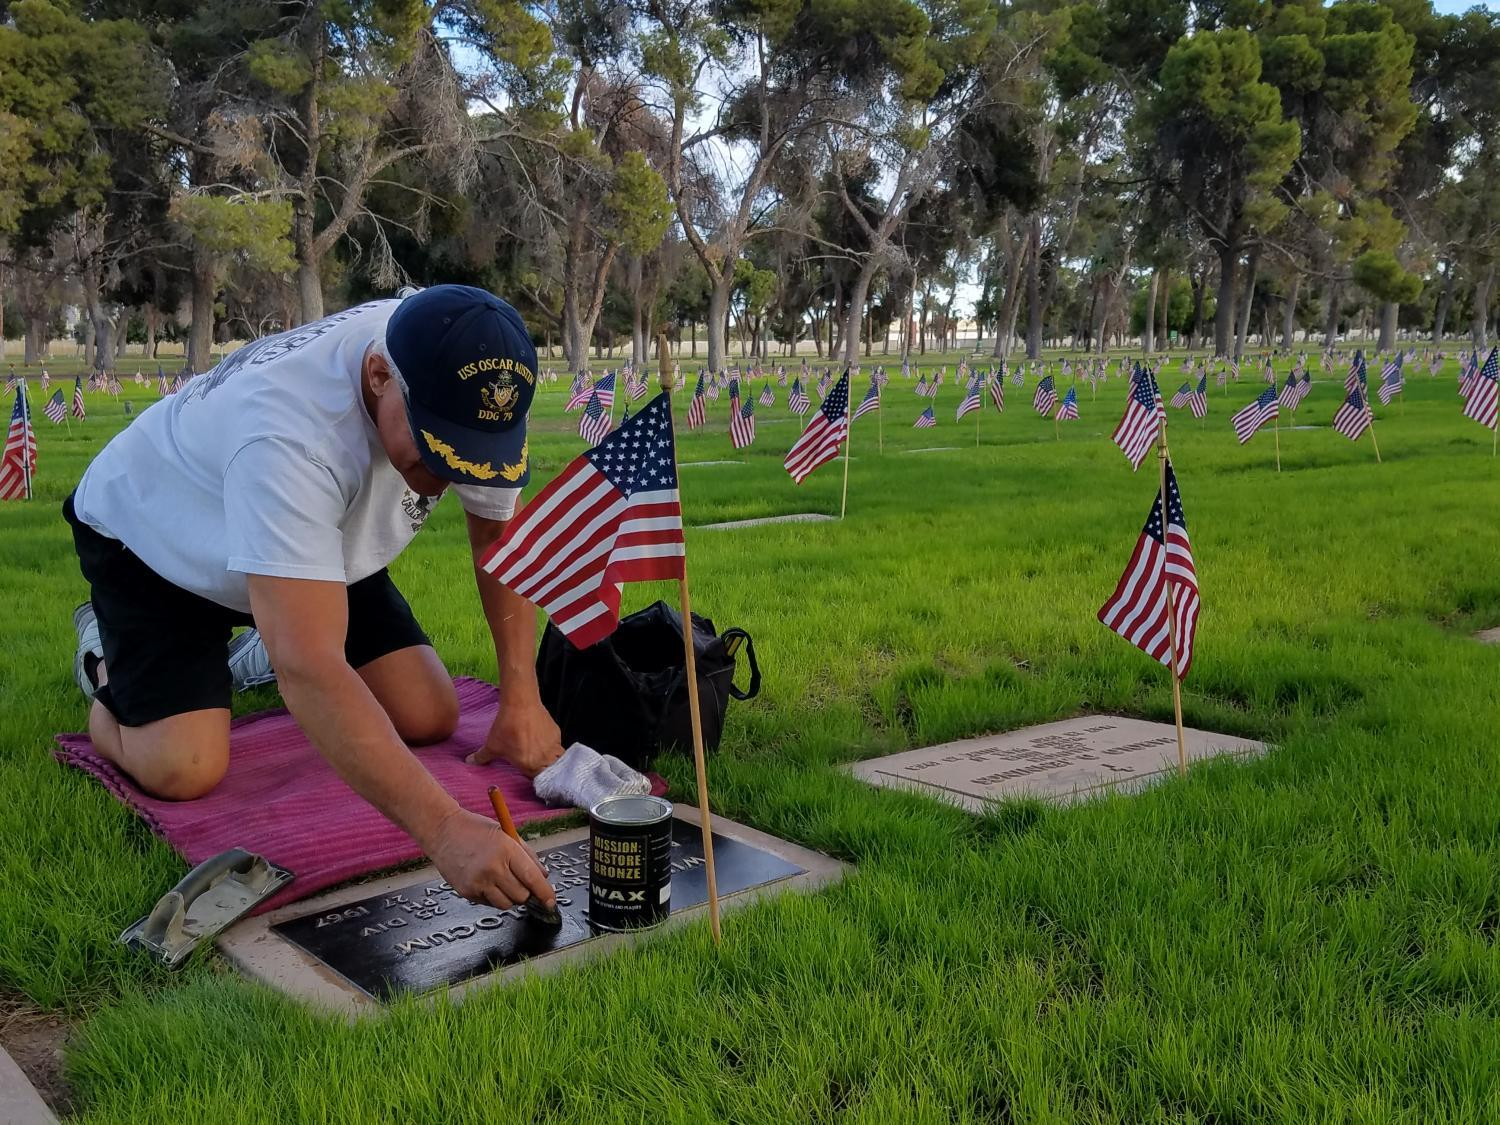 Tom Pawlak works on a grave marker at Greenwood Memory Lawn.